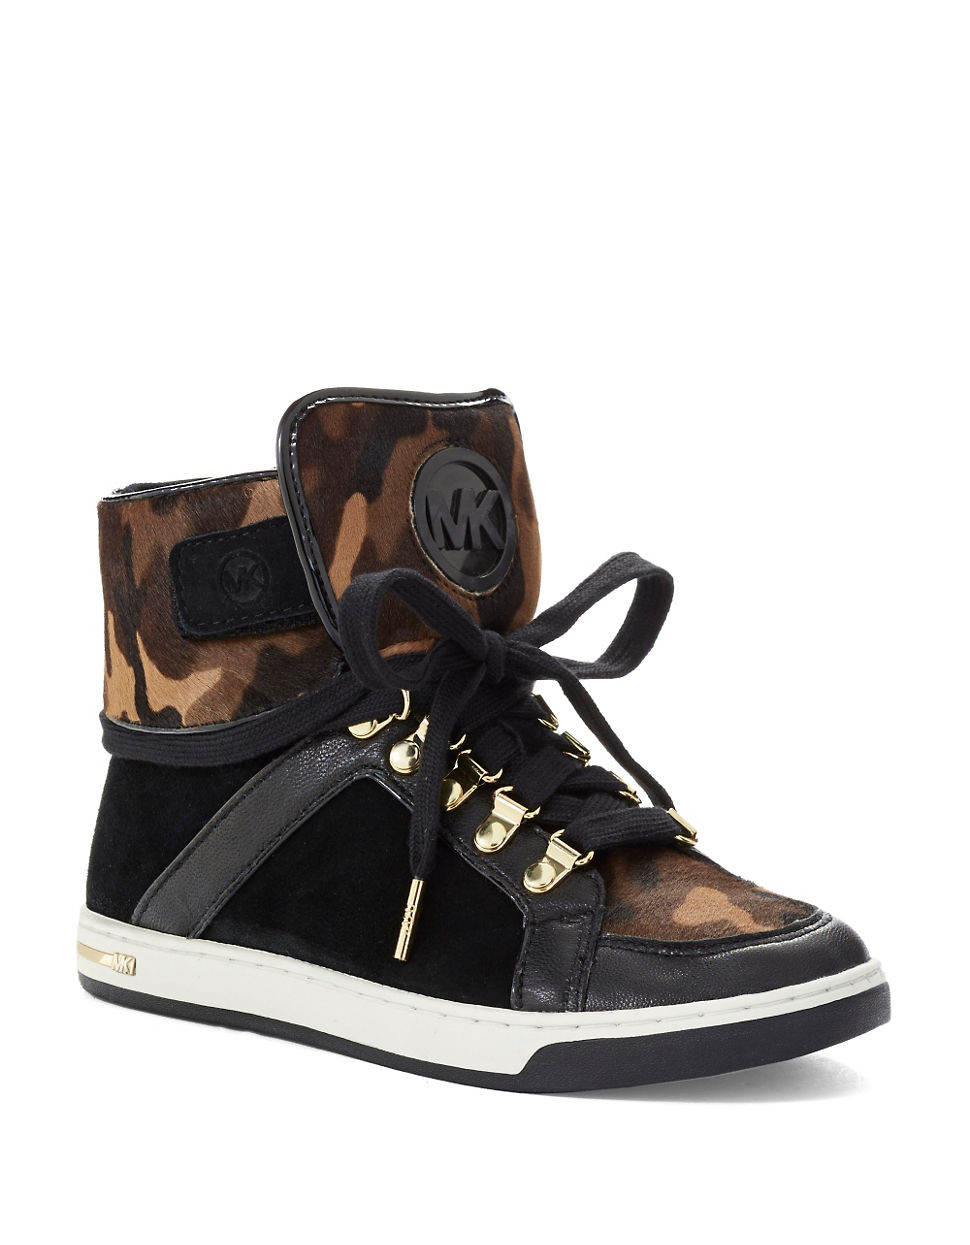 Michael Michael Kors Greenwich High Top Fashion Sneakers View Fullscreen